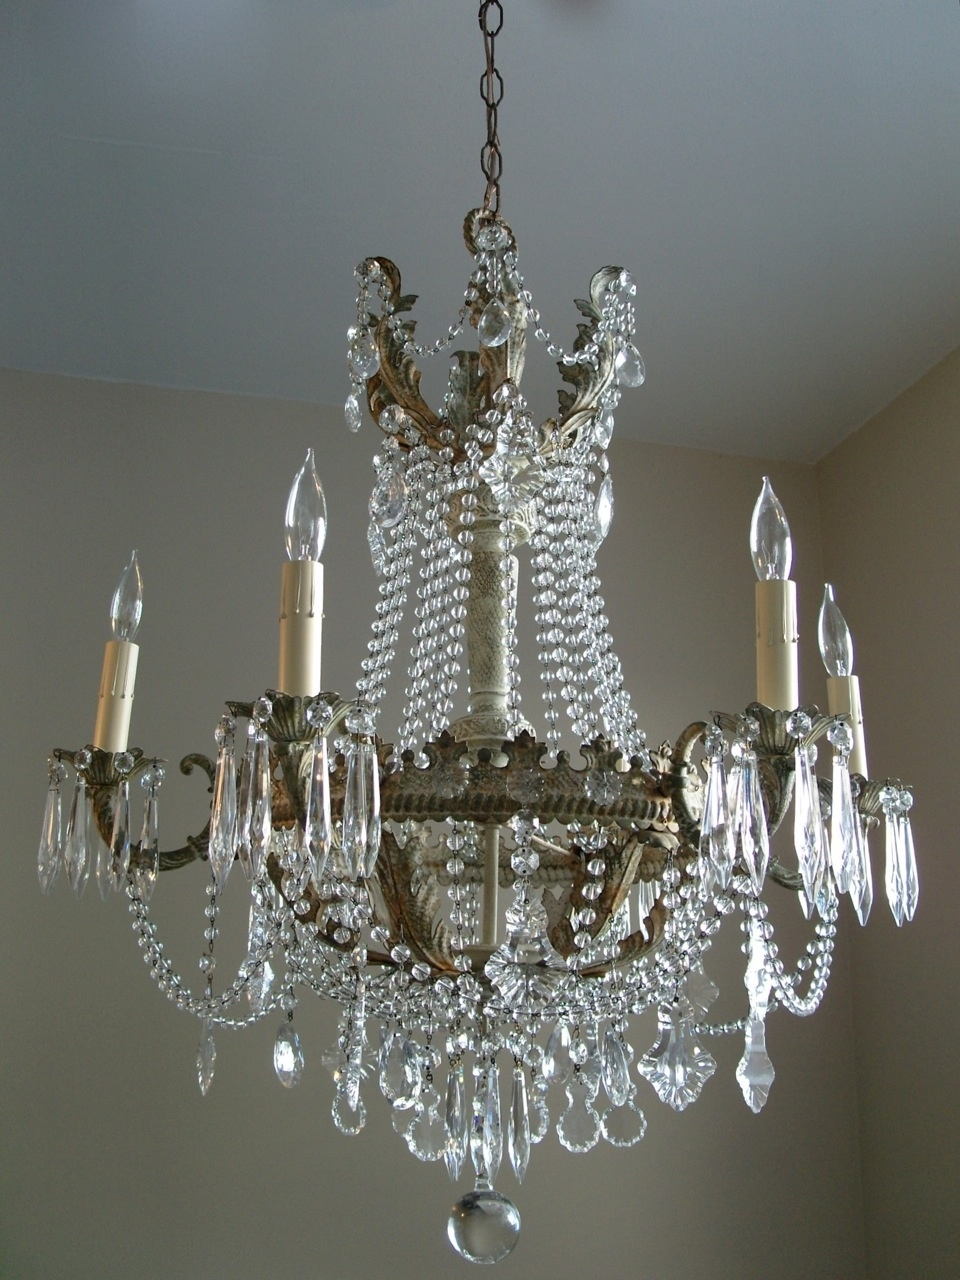 Antique Chandeliers or Shabby Chic Chandeliers?